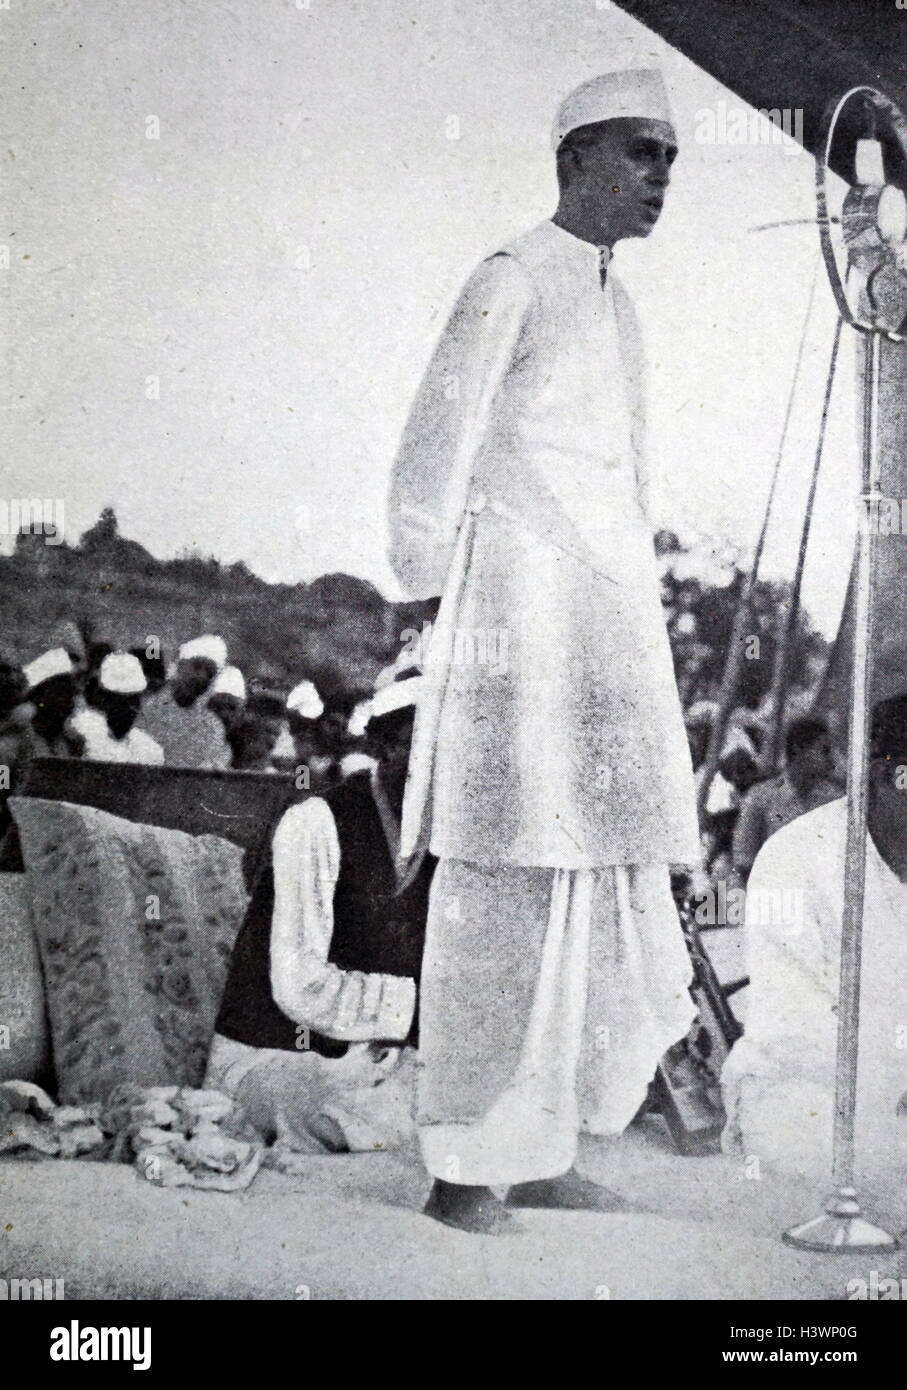 Photograph of Jawaharlal Nehru (1889-1964) first Prime Minister of India. Dated 20th Century - Stock Image